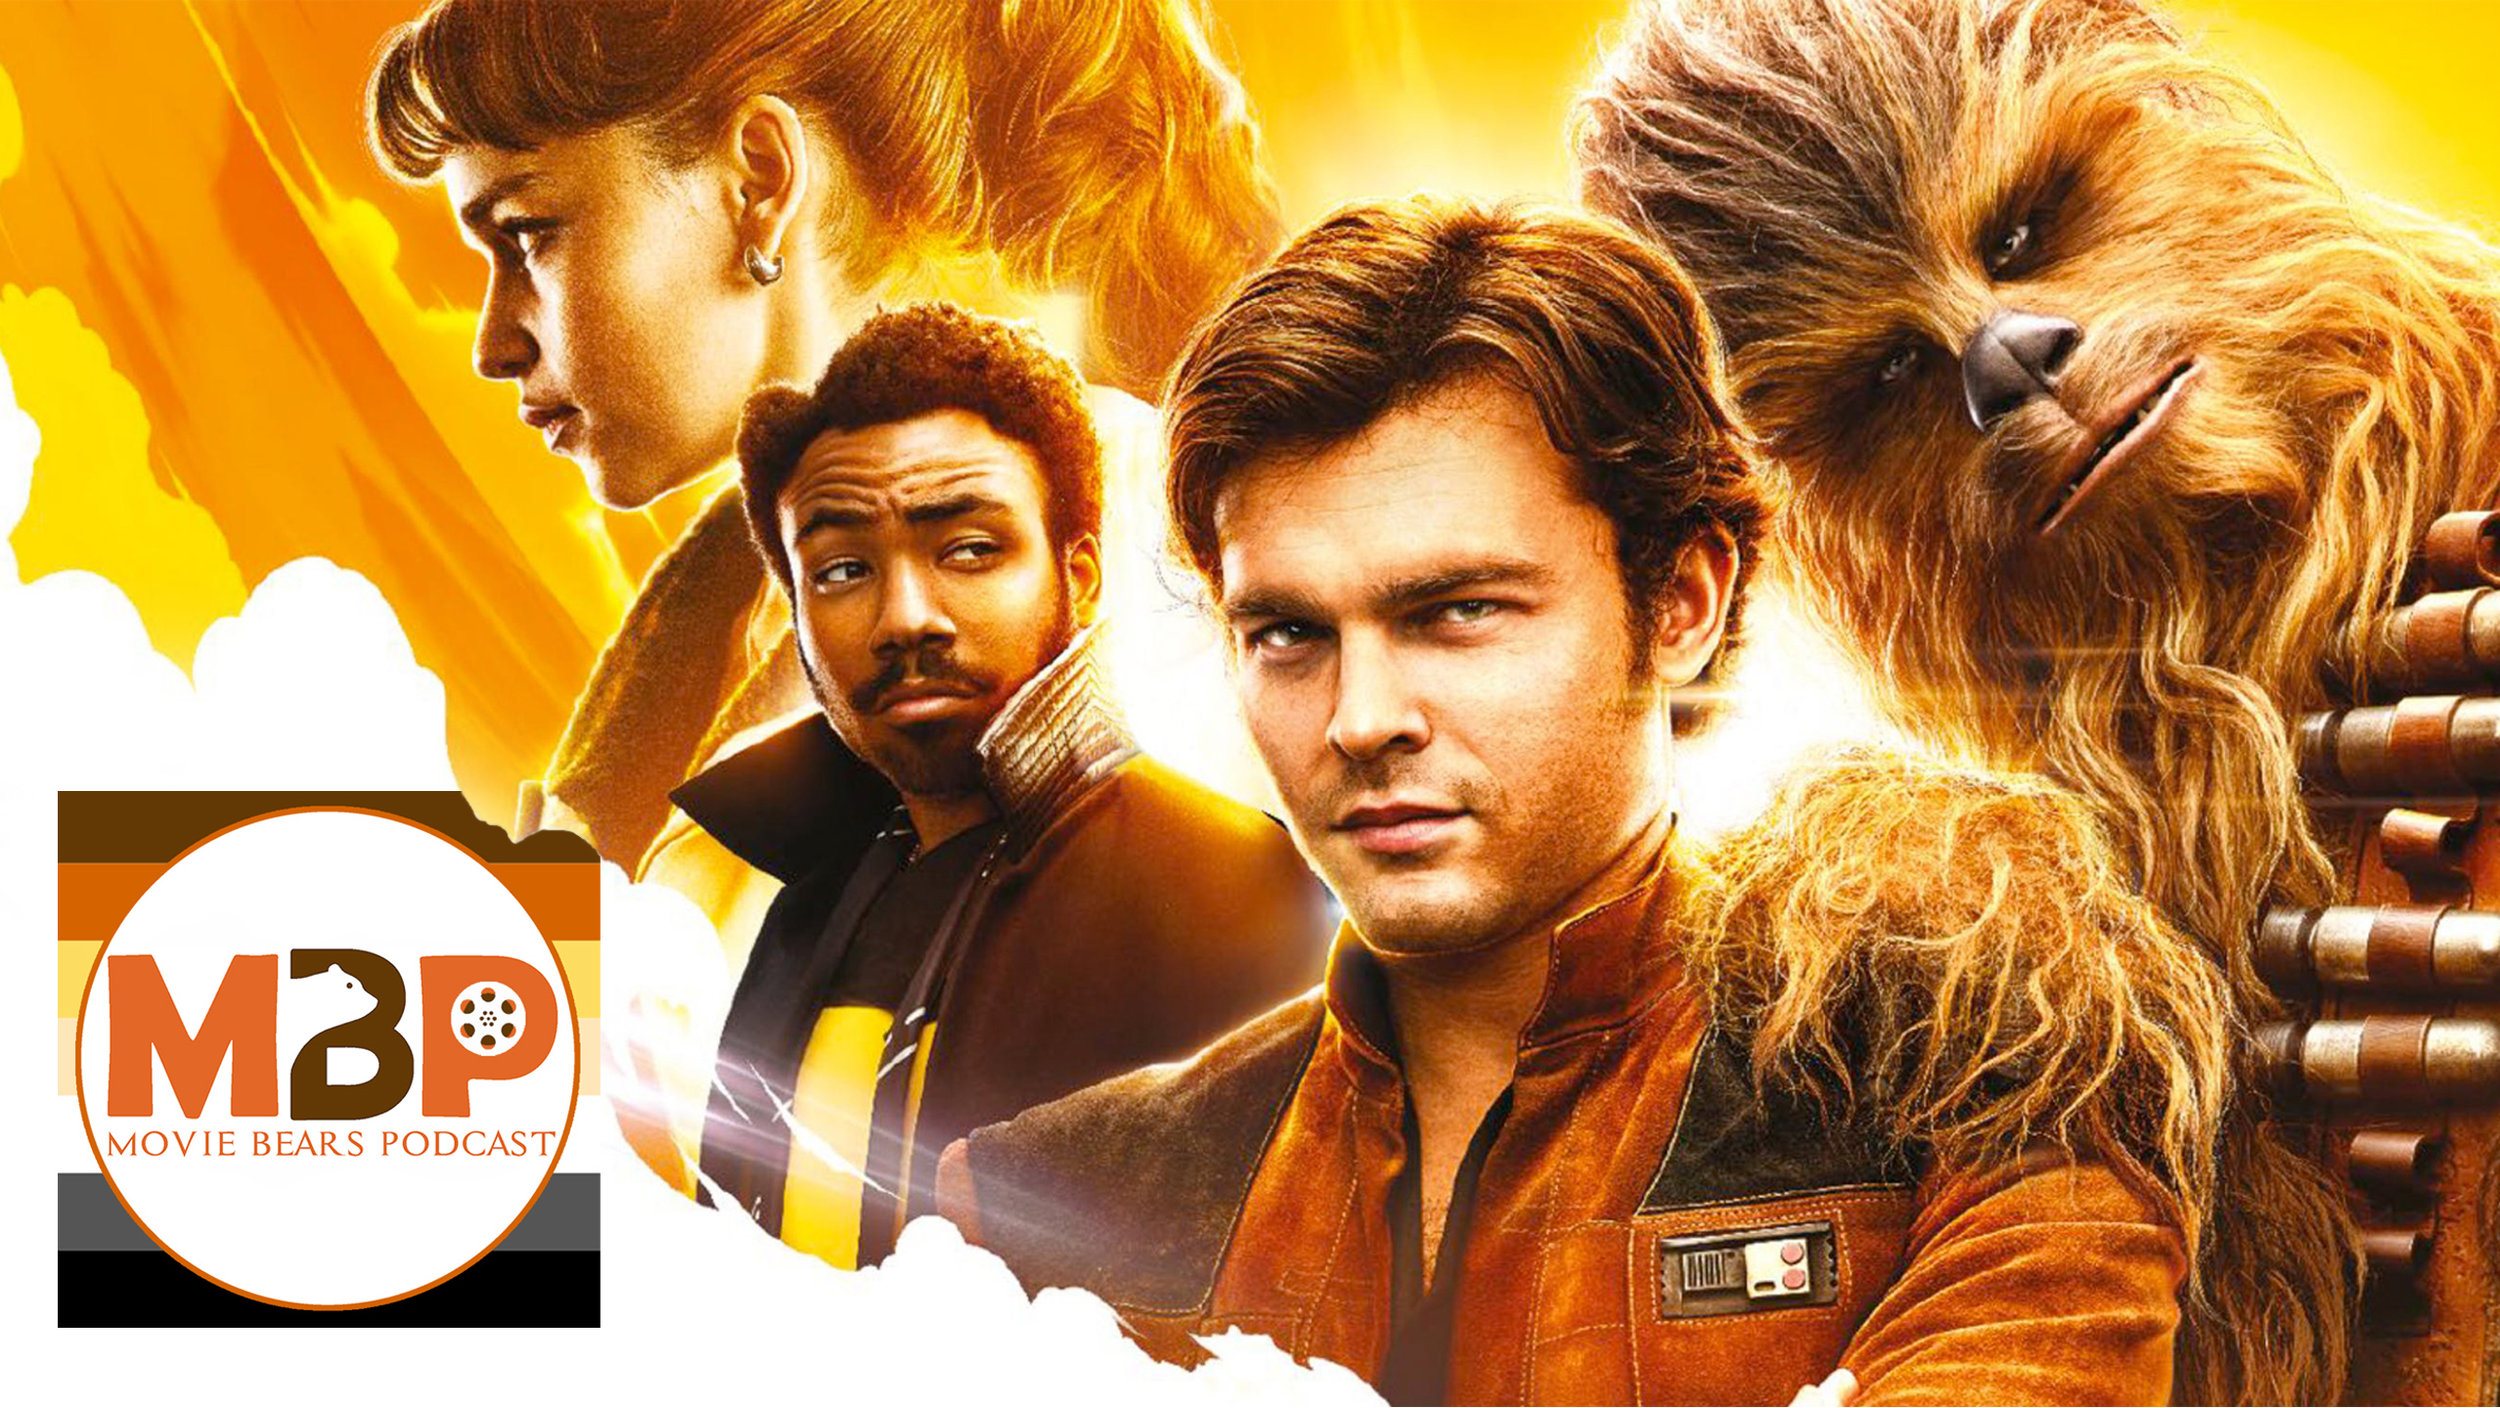 MBP e284 - 'Solo: A Star Wars Story' (5/28/18)    Alright, you scruffy-looking nerf herders! Listen up to our review of the latest addition to the Star Wars movie franchise, 'Solo: A Star Wars Story'.